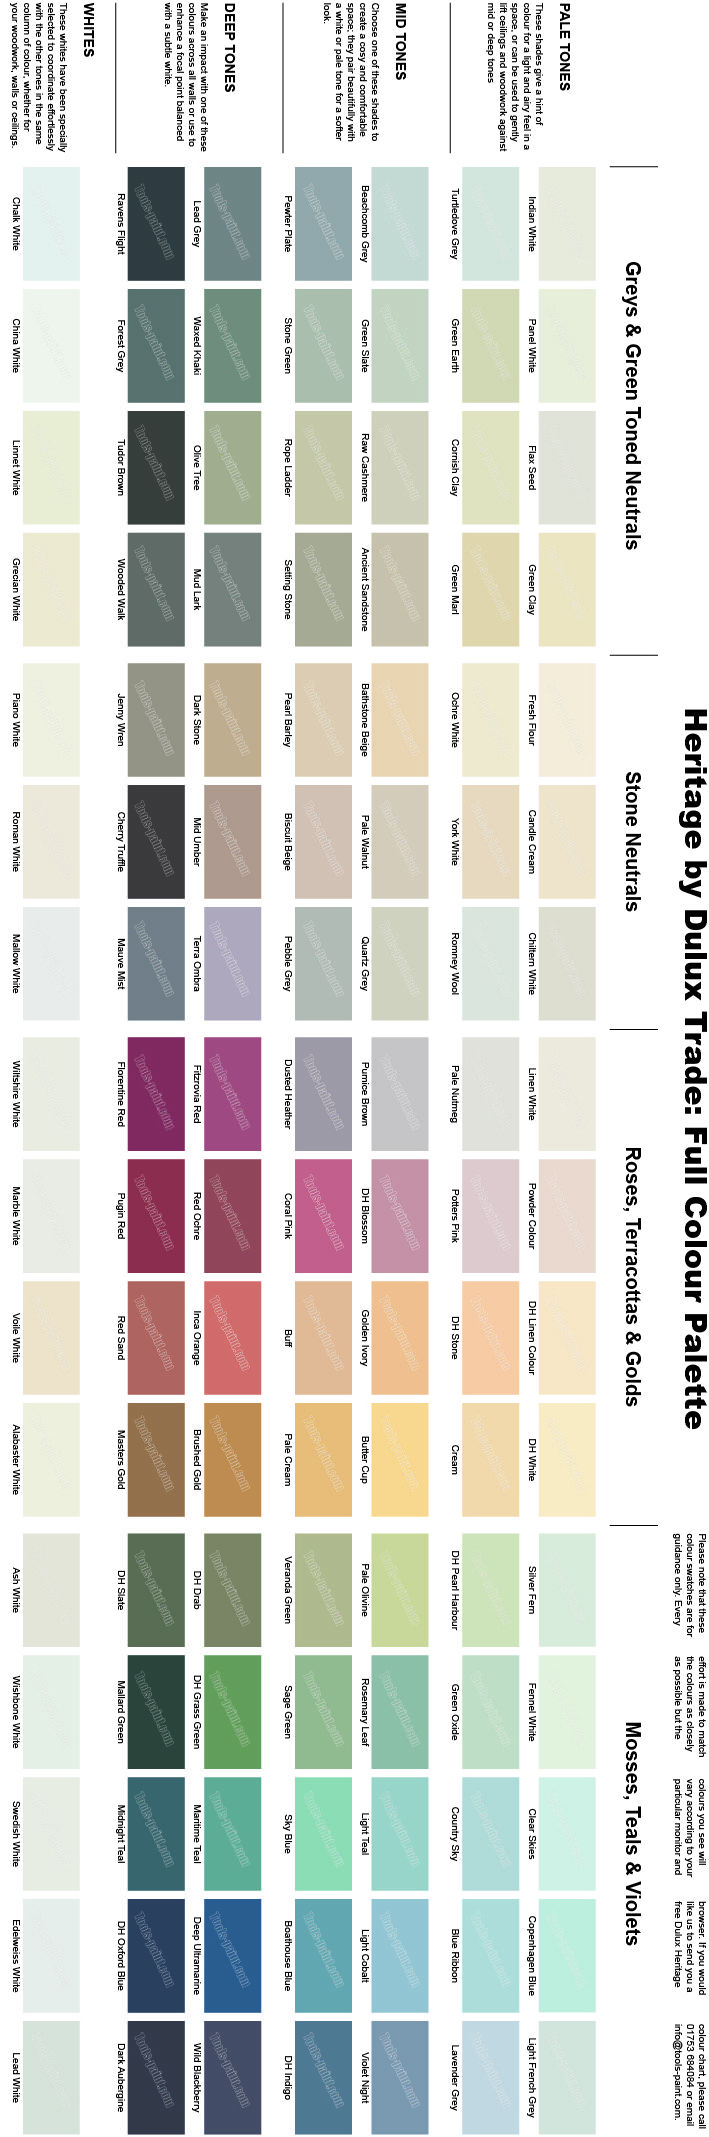 Dulux Heritage Colour Chart Full